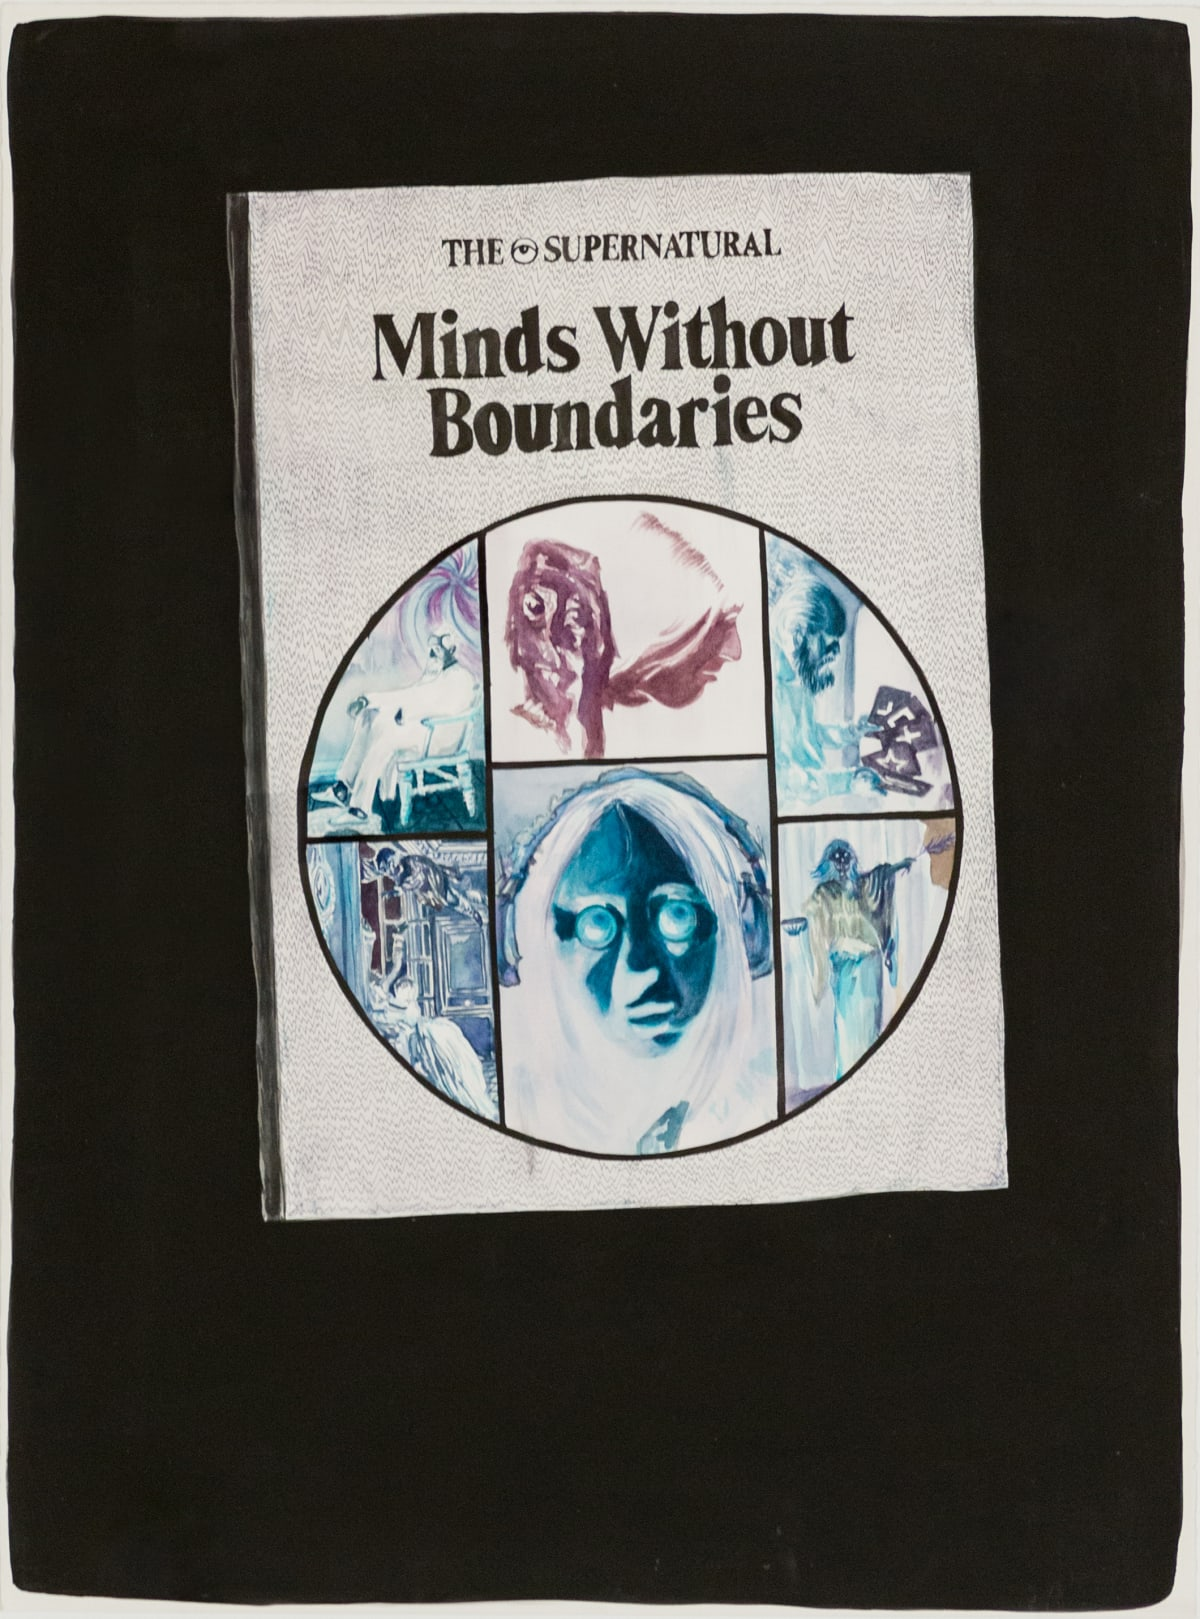 Todd Ryan White, Minds Without Boundaries, 2019